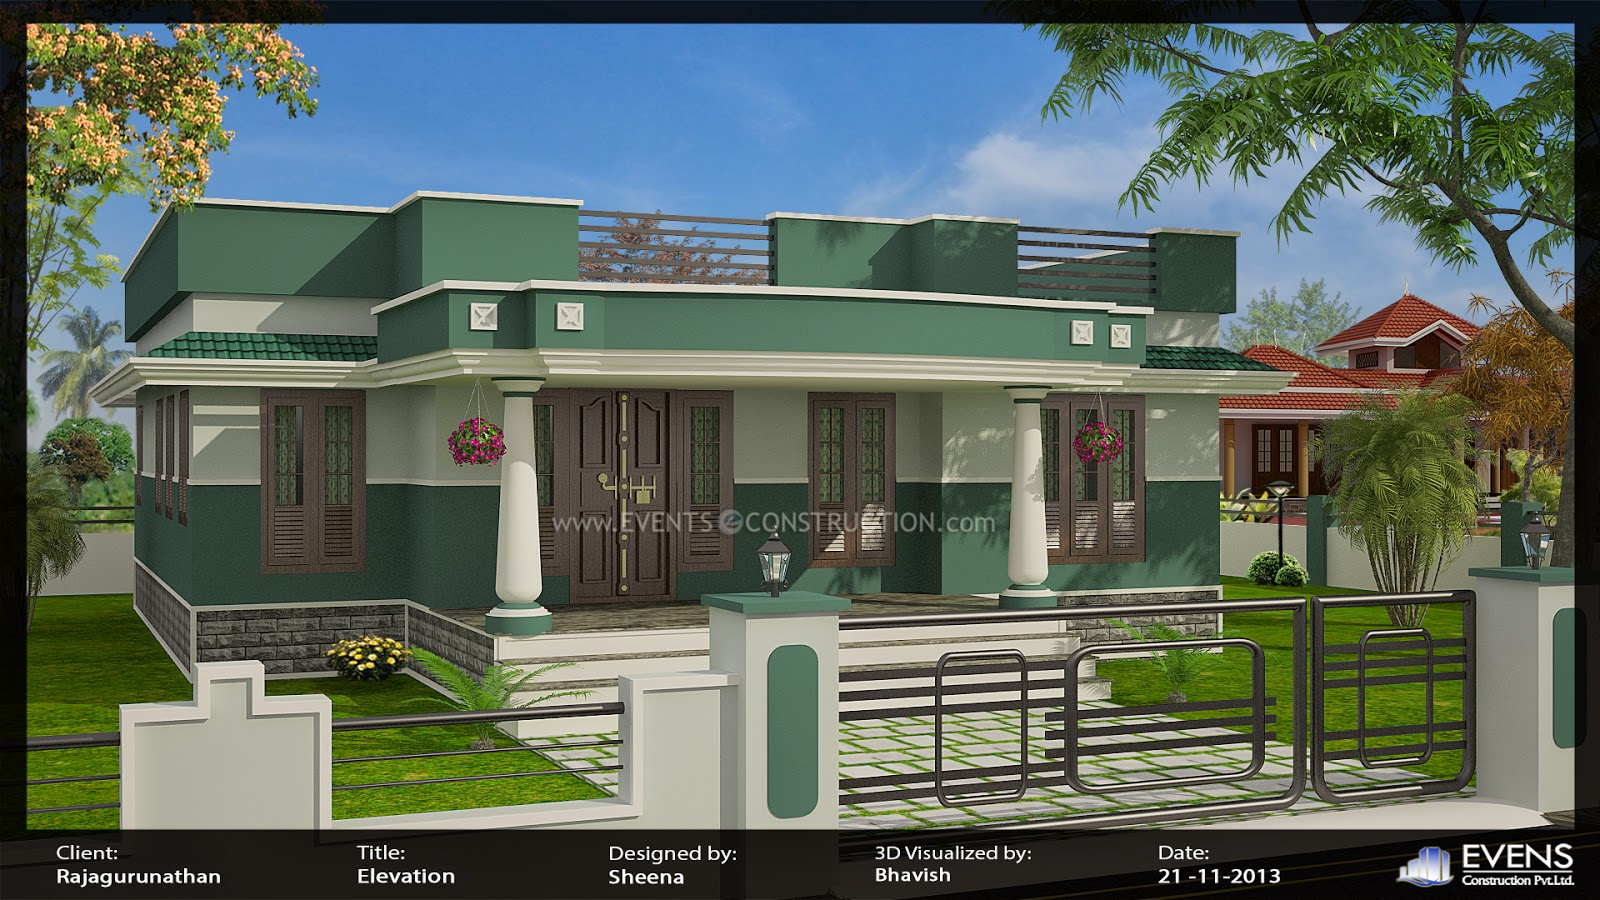 Evens construction pvt ltd march 2014 for Single floor house designs tamilnadu